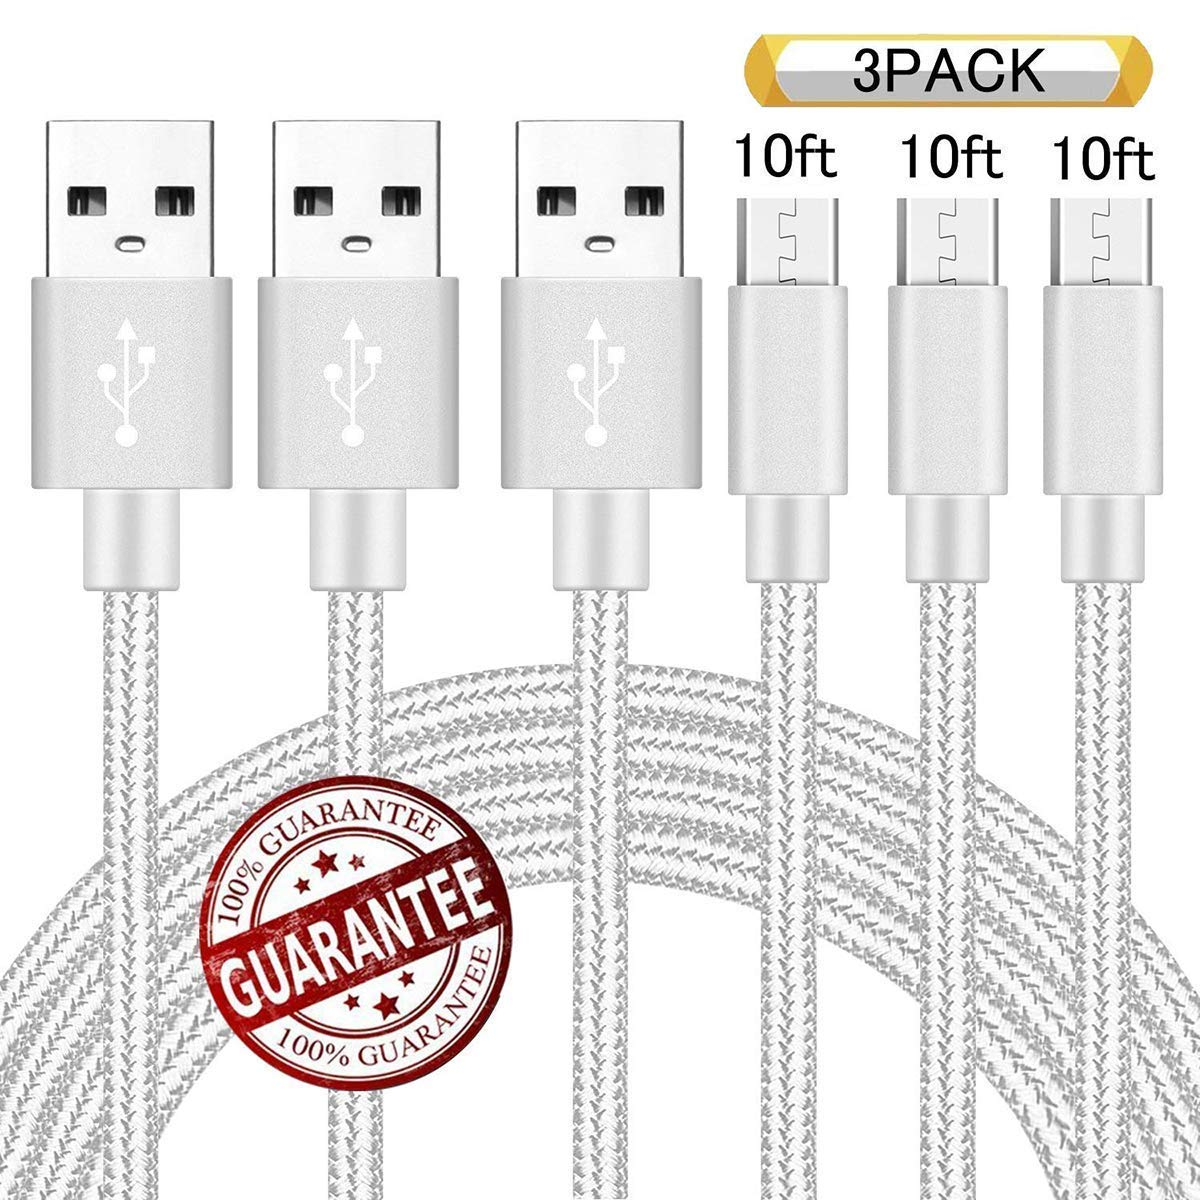 10FT Micro USB Android Charger Cable 3Pack Phone Fast Charging Cord For Samsung Galaxy S7 S6 Edge J7 J3 Note 5/4 LG Stylo 2/3 V10 K20 K30 Xbox One S/X Playstation 4 dualshock 4 Controller